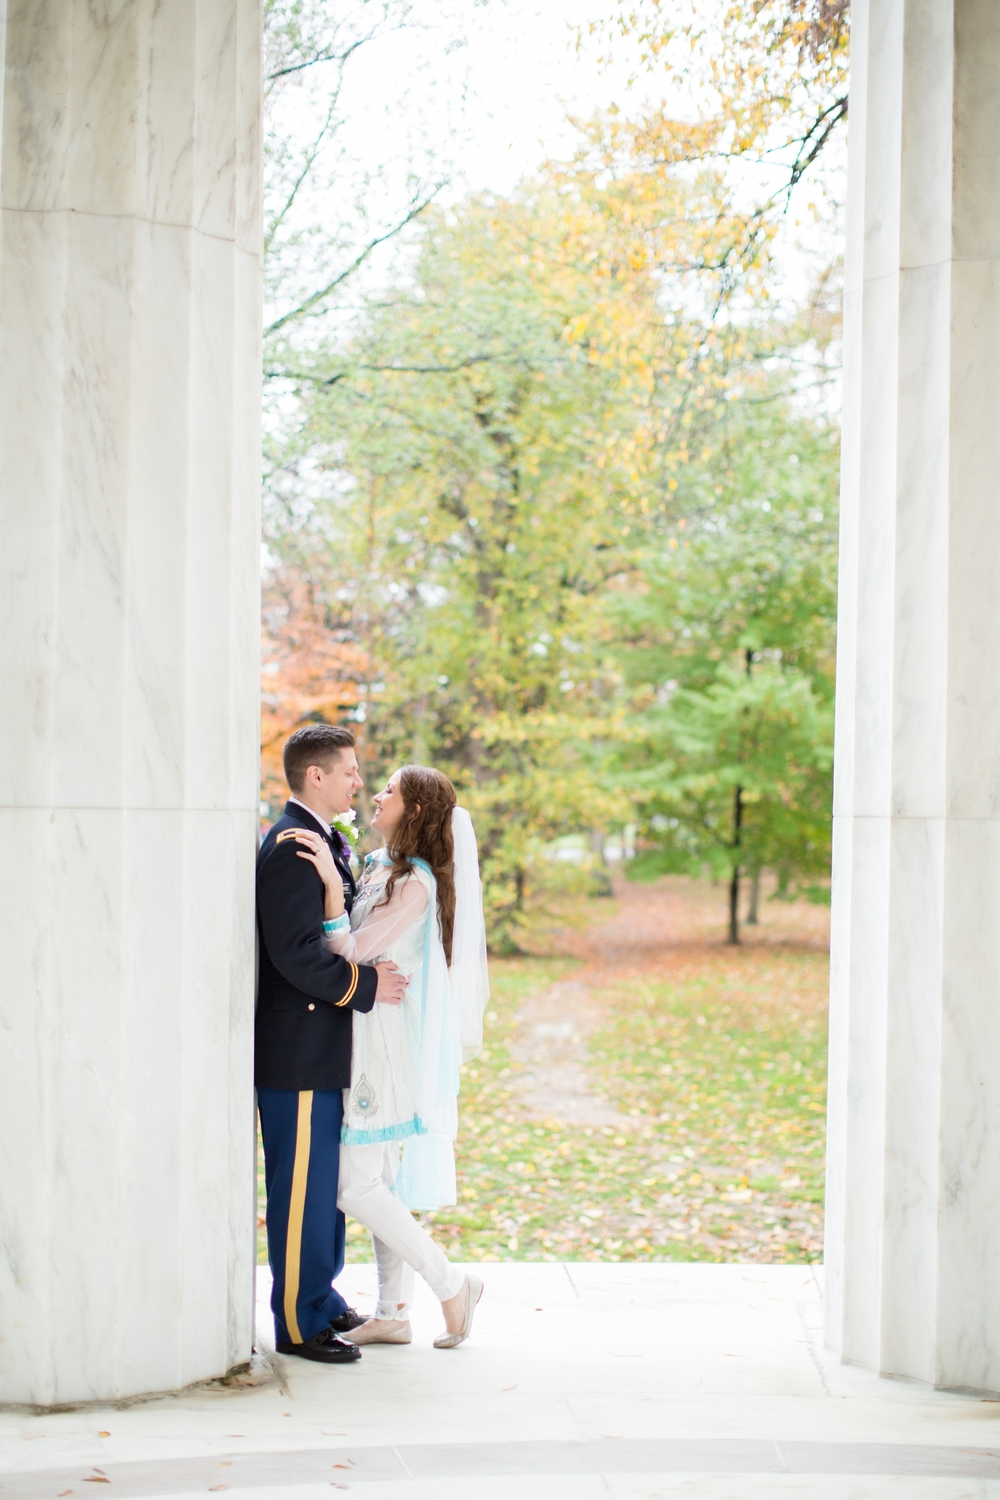 2. Durkee Wedding Bride & Groom Portraits-388_anna grace photography virginia wedding photographer dc war memorial washington dc photo.jpg